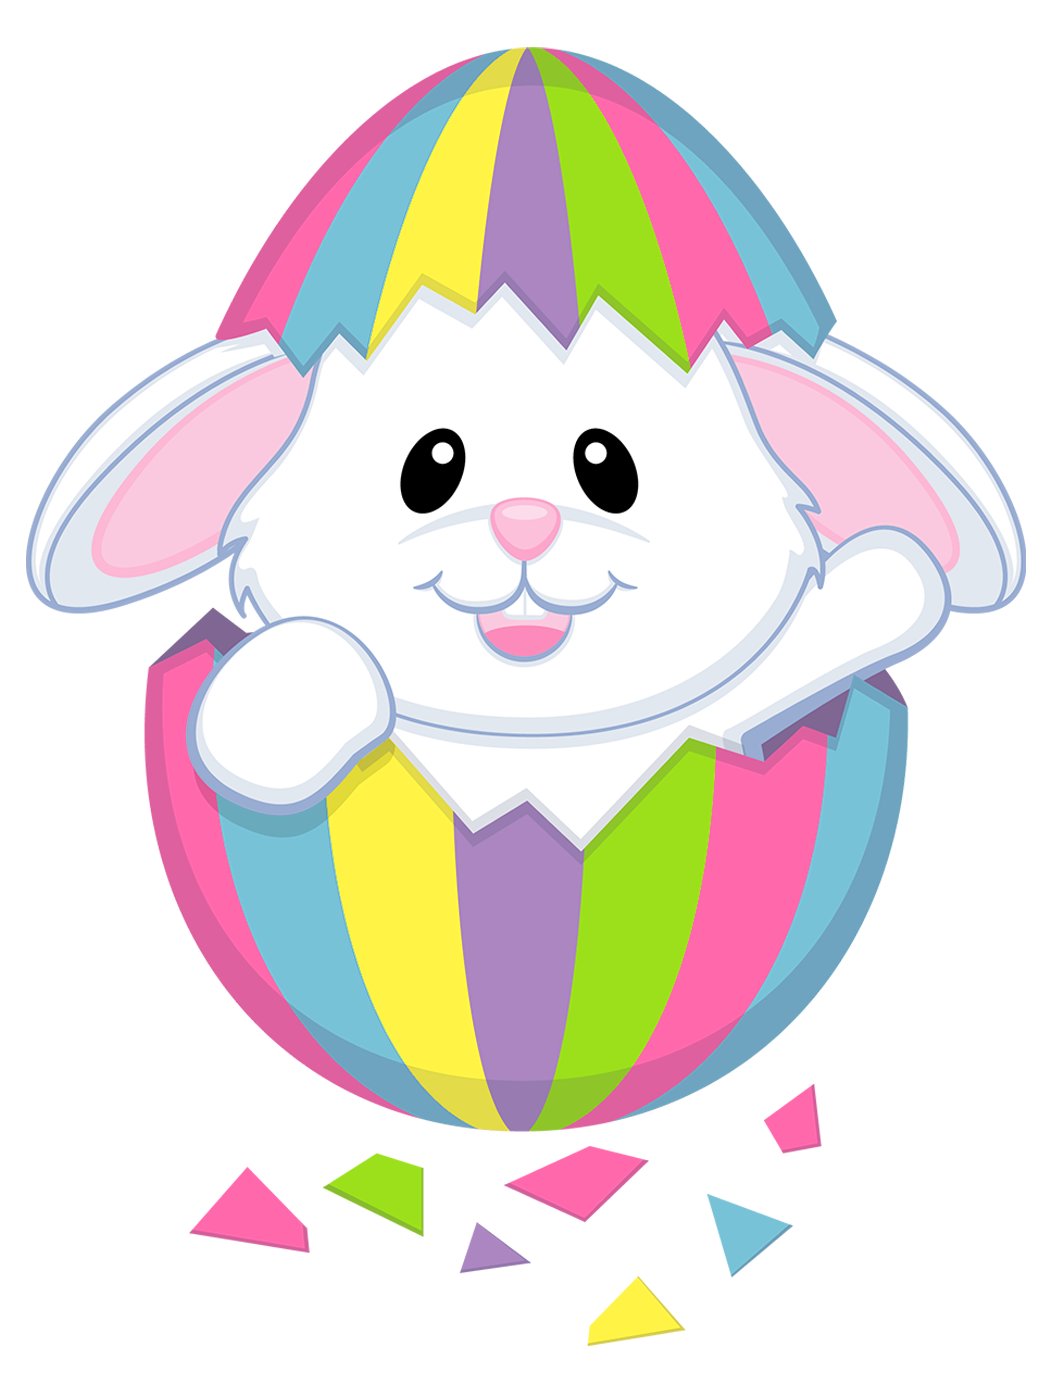 Easter egg hunt clipart christian picture stock Easter Bunny - ClipArt Best | Easter eggs | Pinterest | Easter bunny ... picture stock